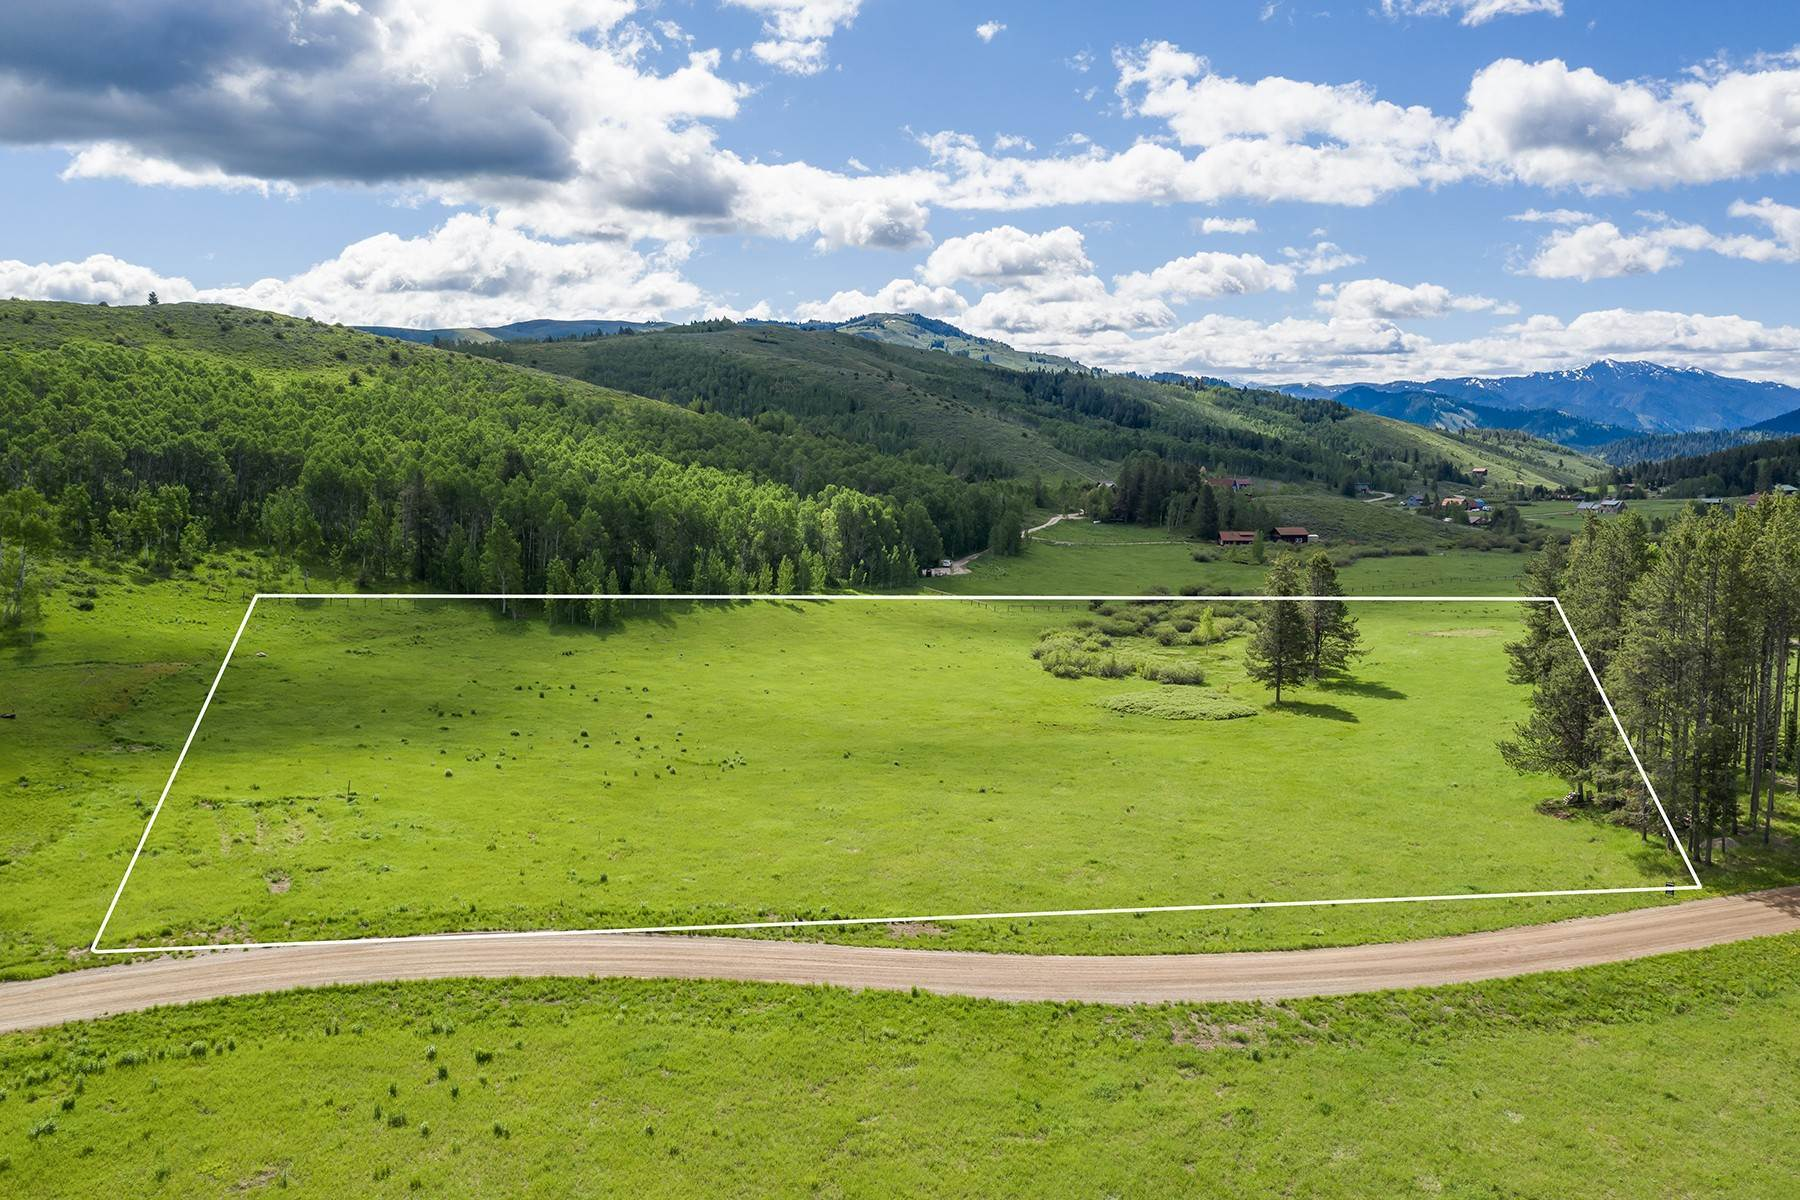 Land for Sale at The Best Lot in Pineglen Now Available 7670 S Pineglen Drive Wilson, Wyoming 83014 United States